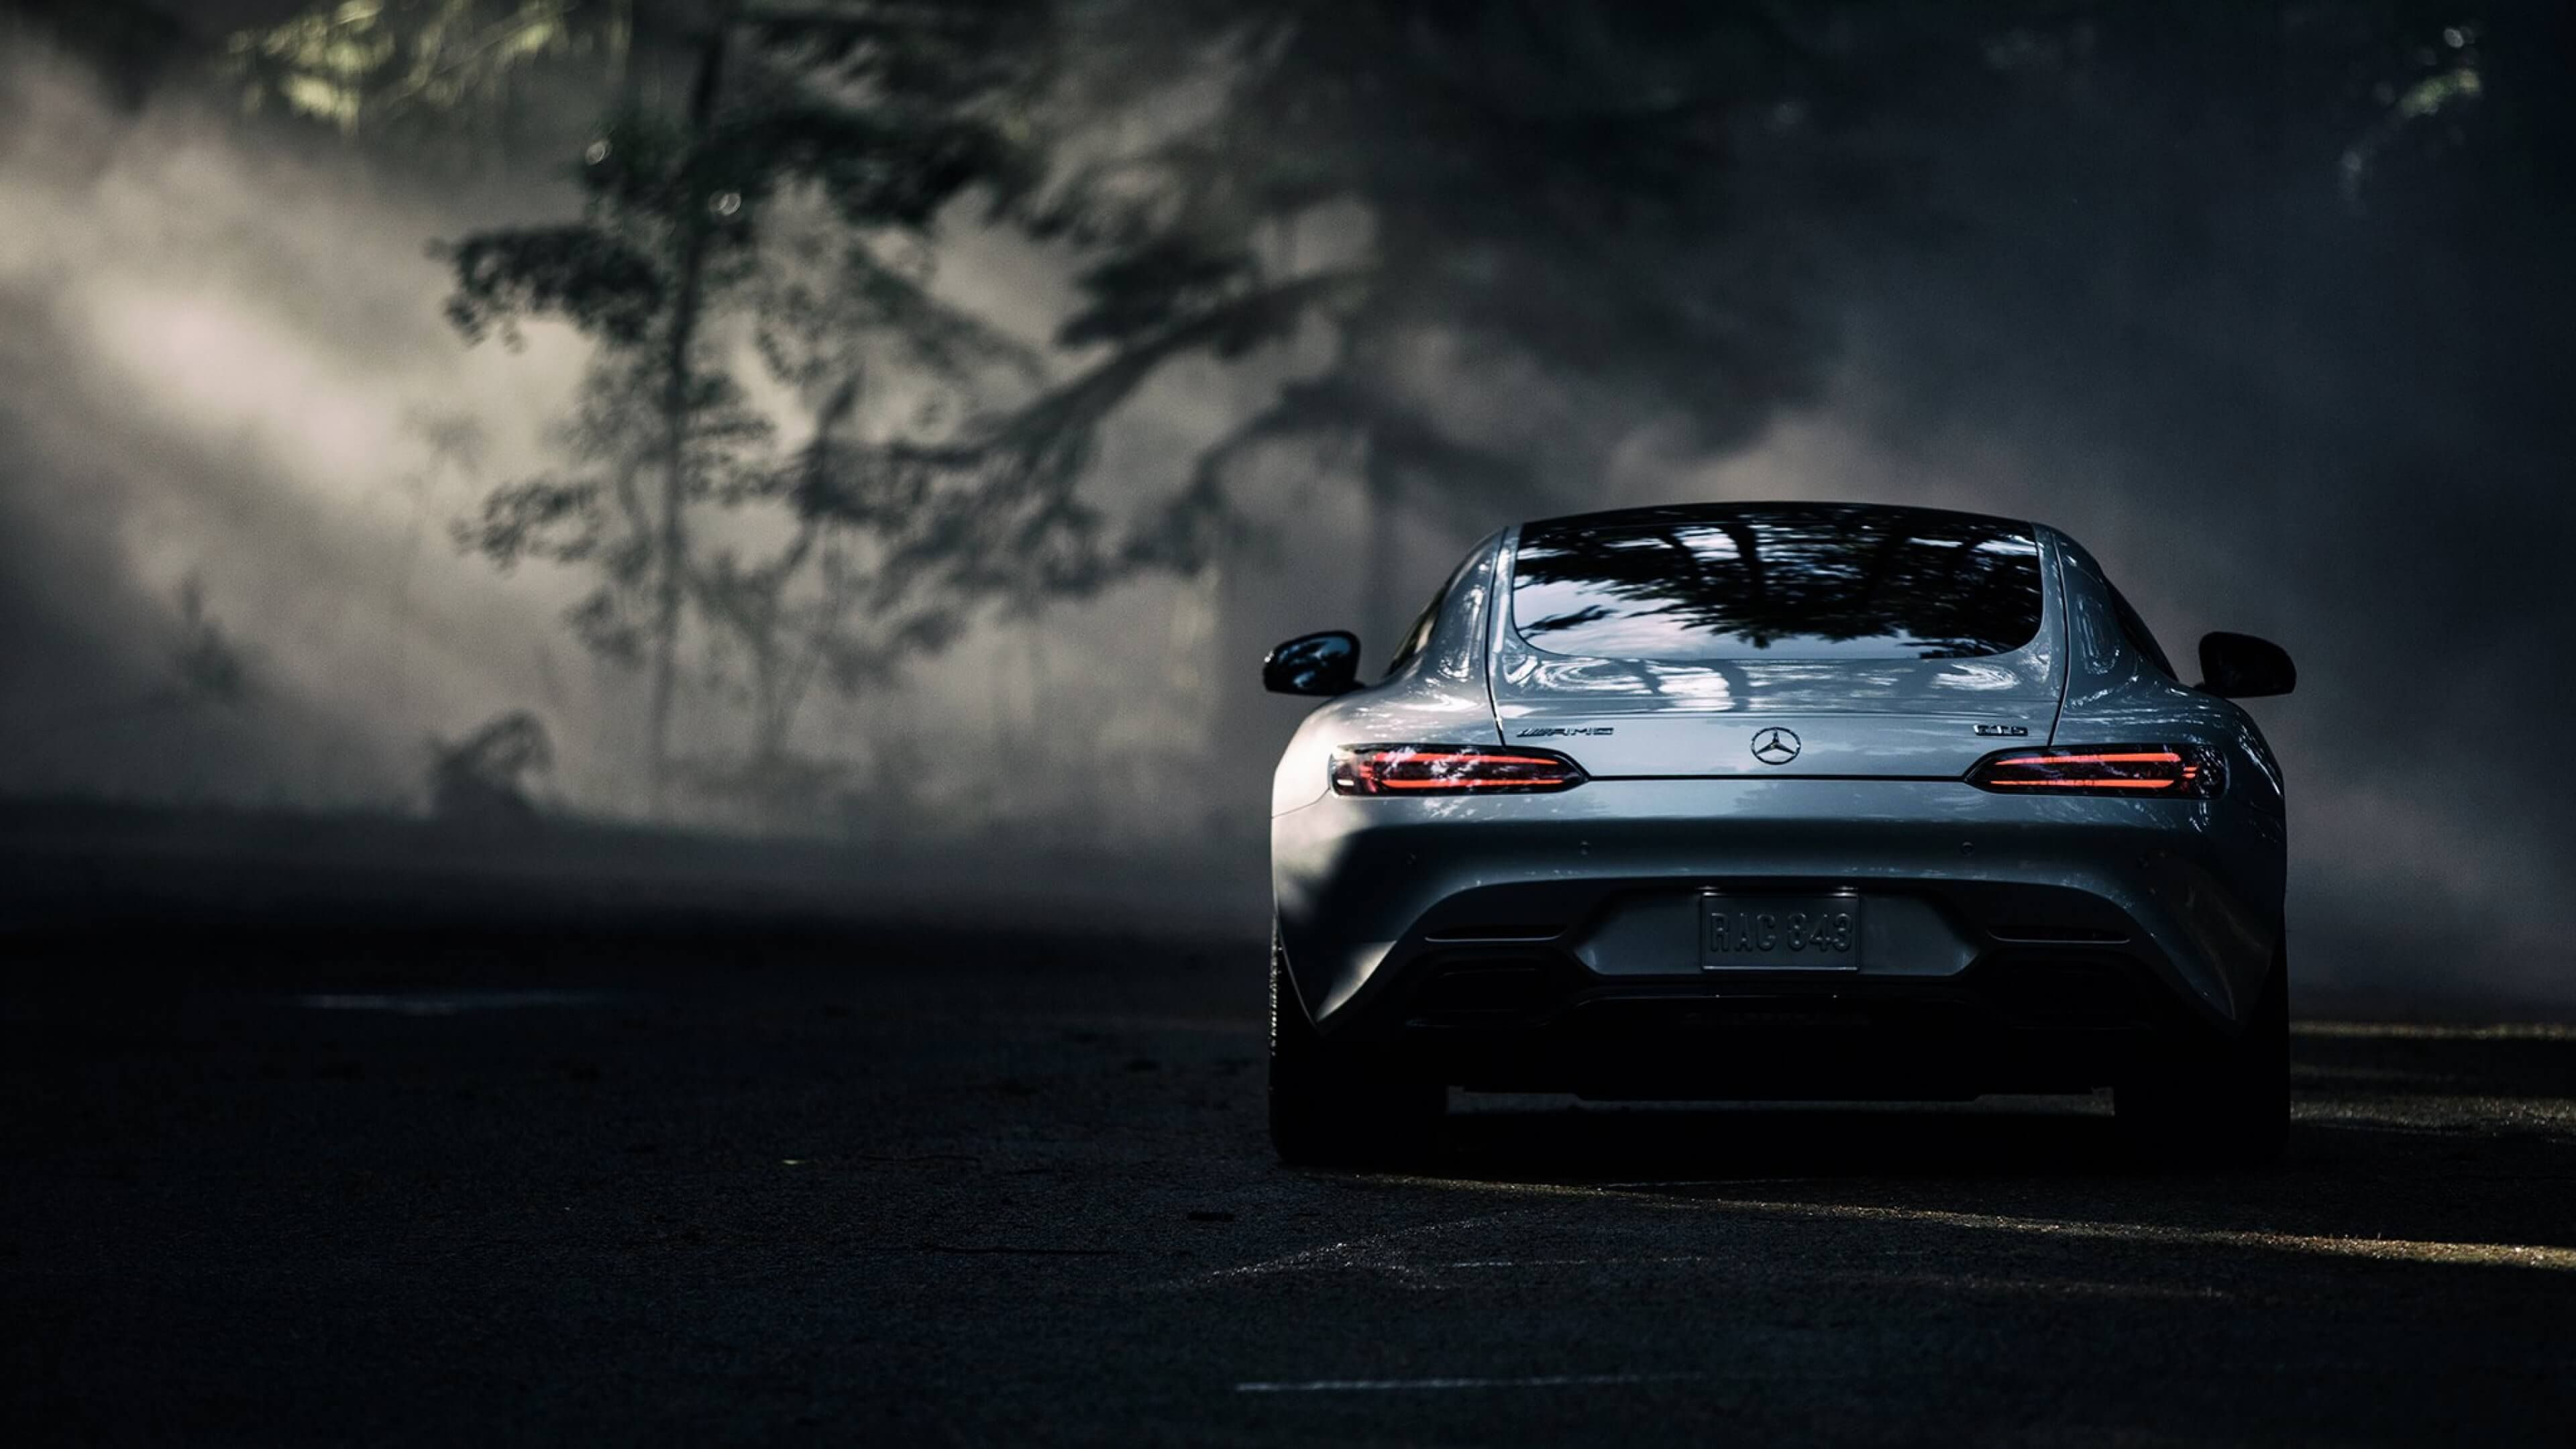 Mercedes Benz Amg Gts Mercedes Wallpaper Amg